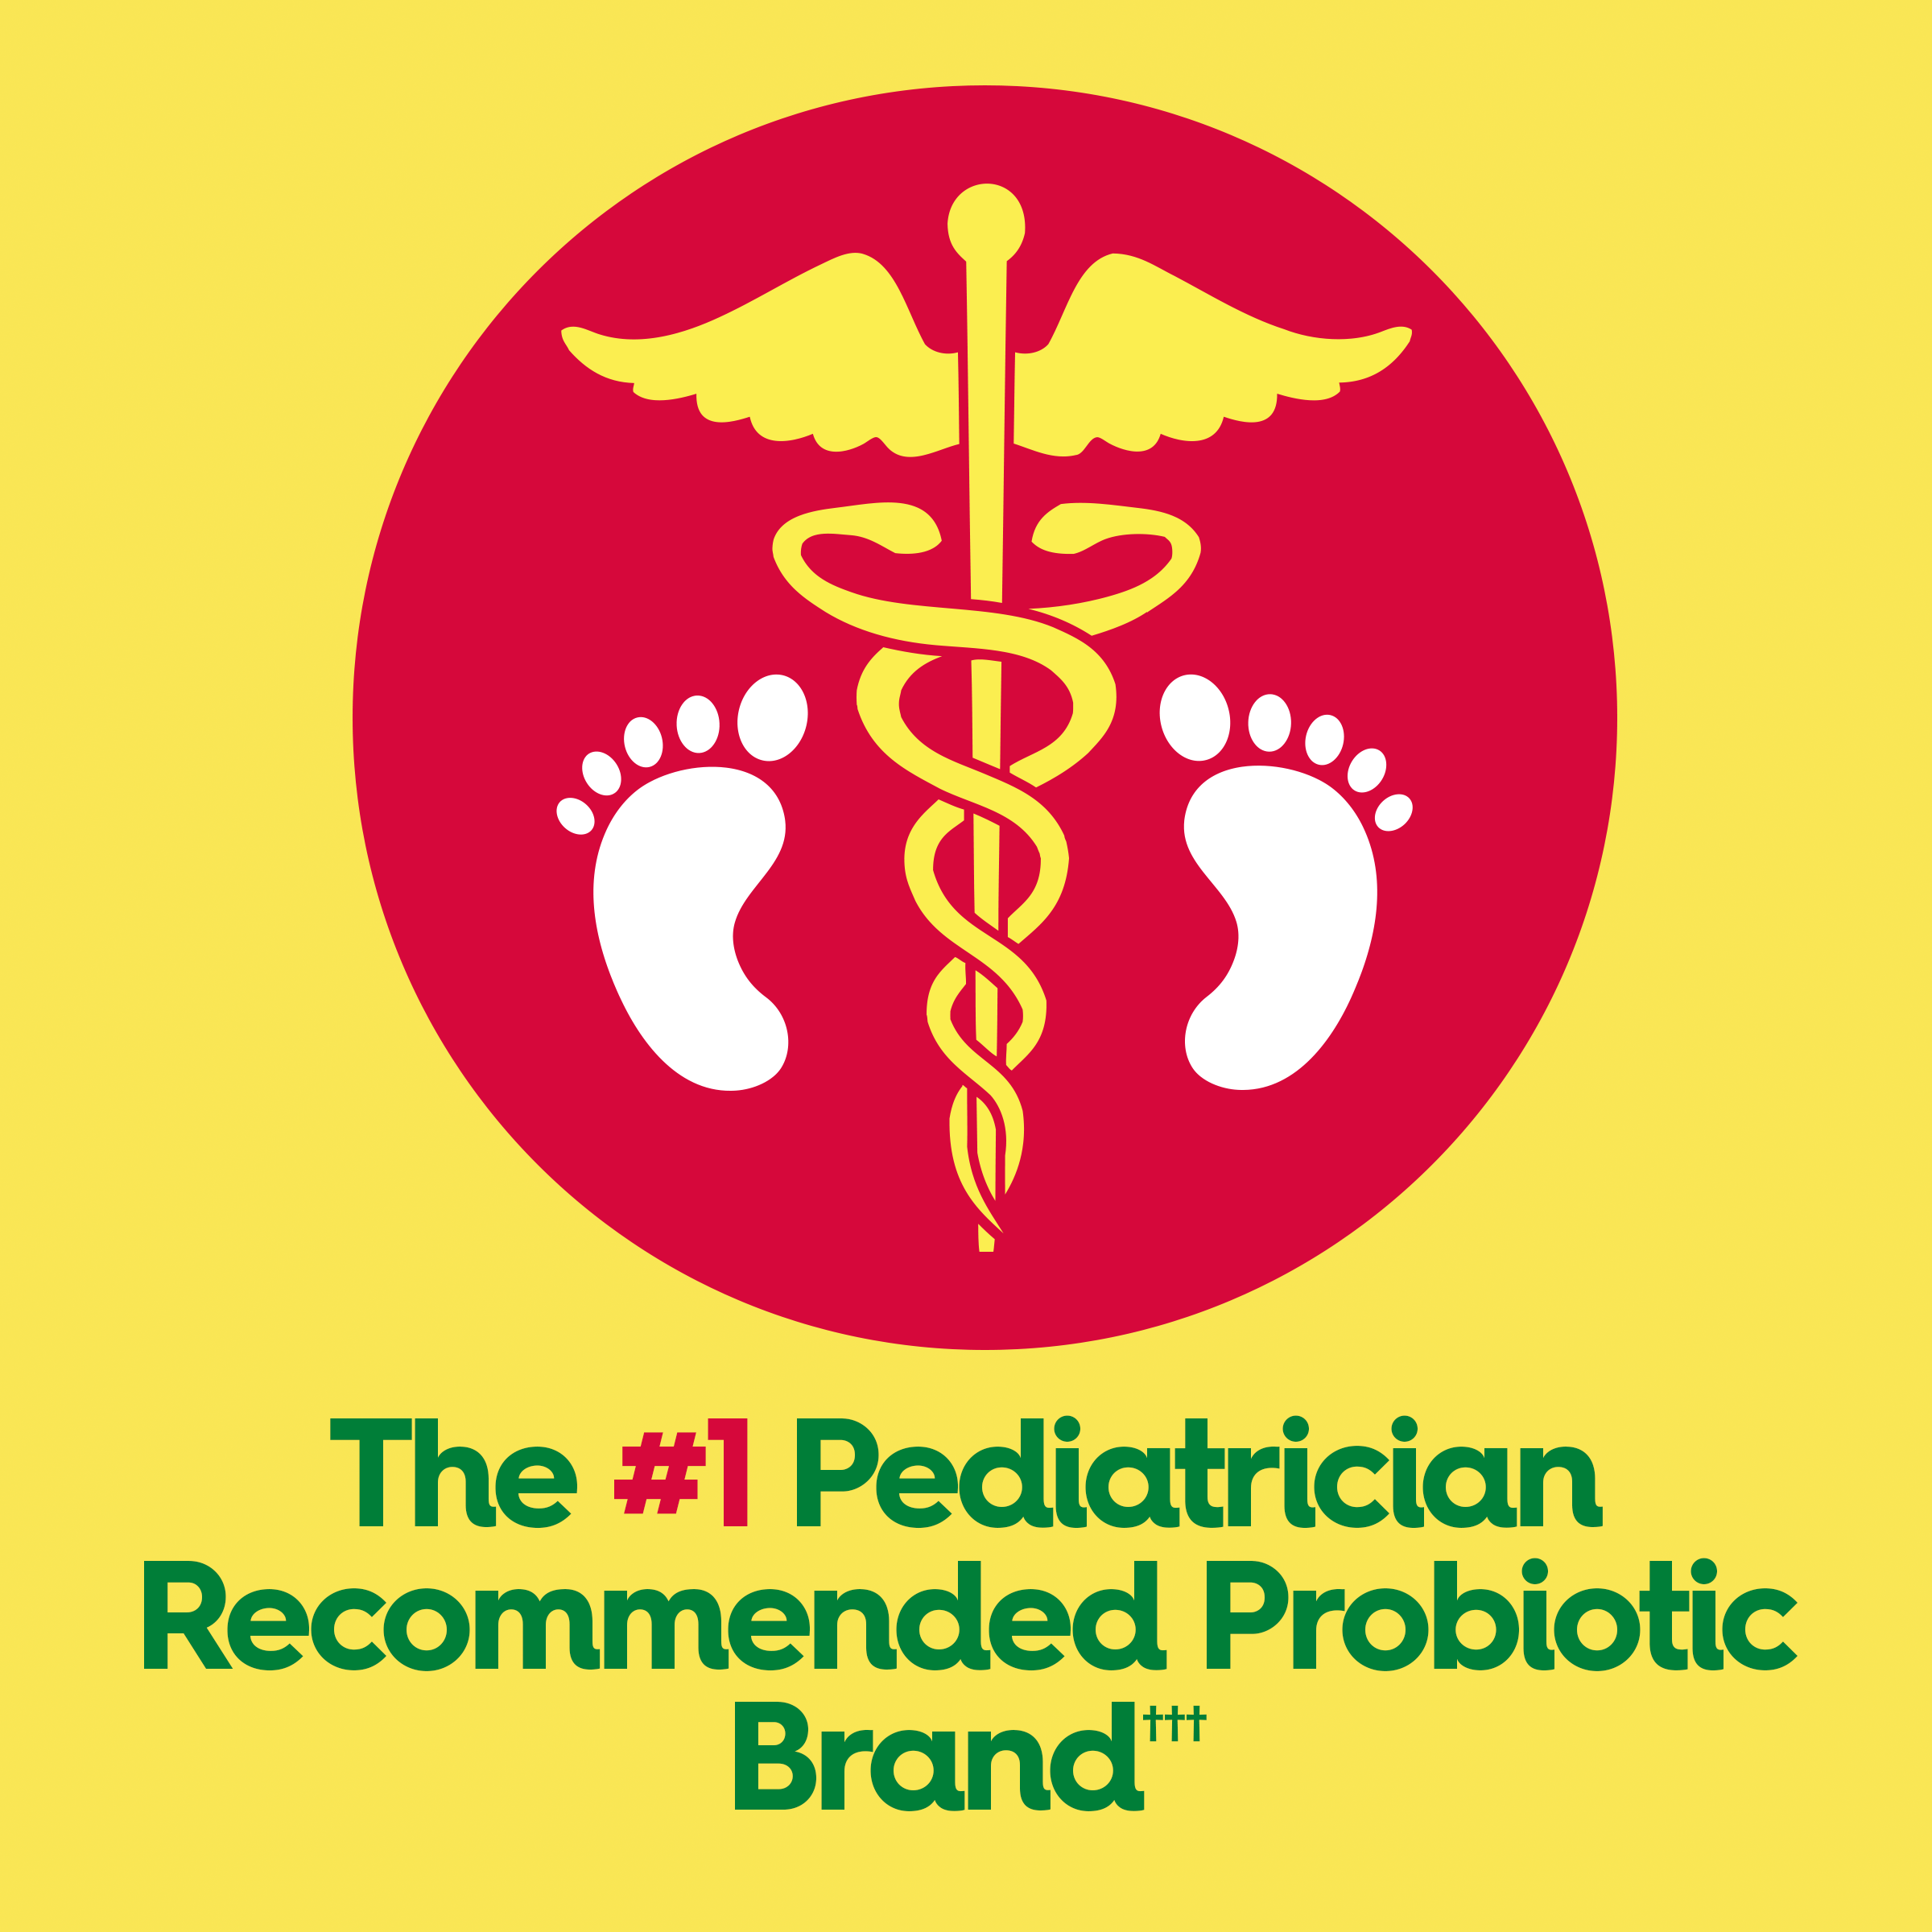 The #1 Pediatrician Recommended Probiotic Brand*